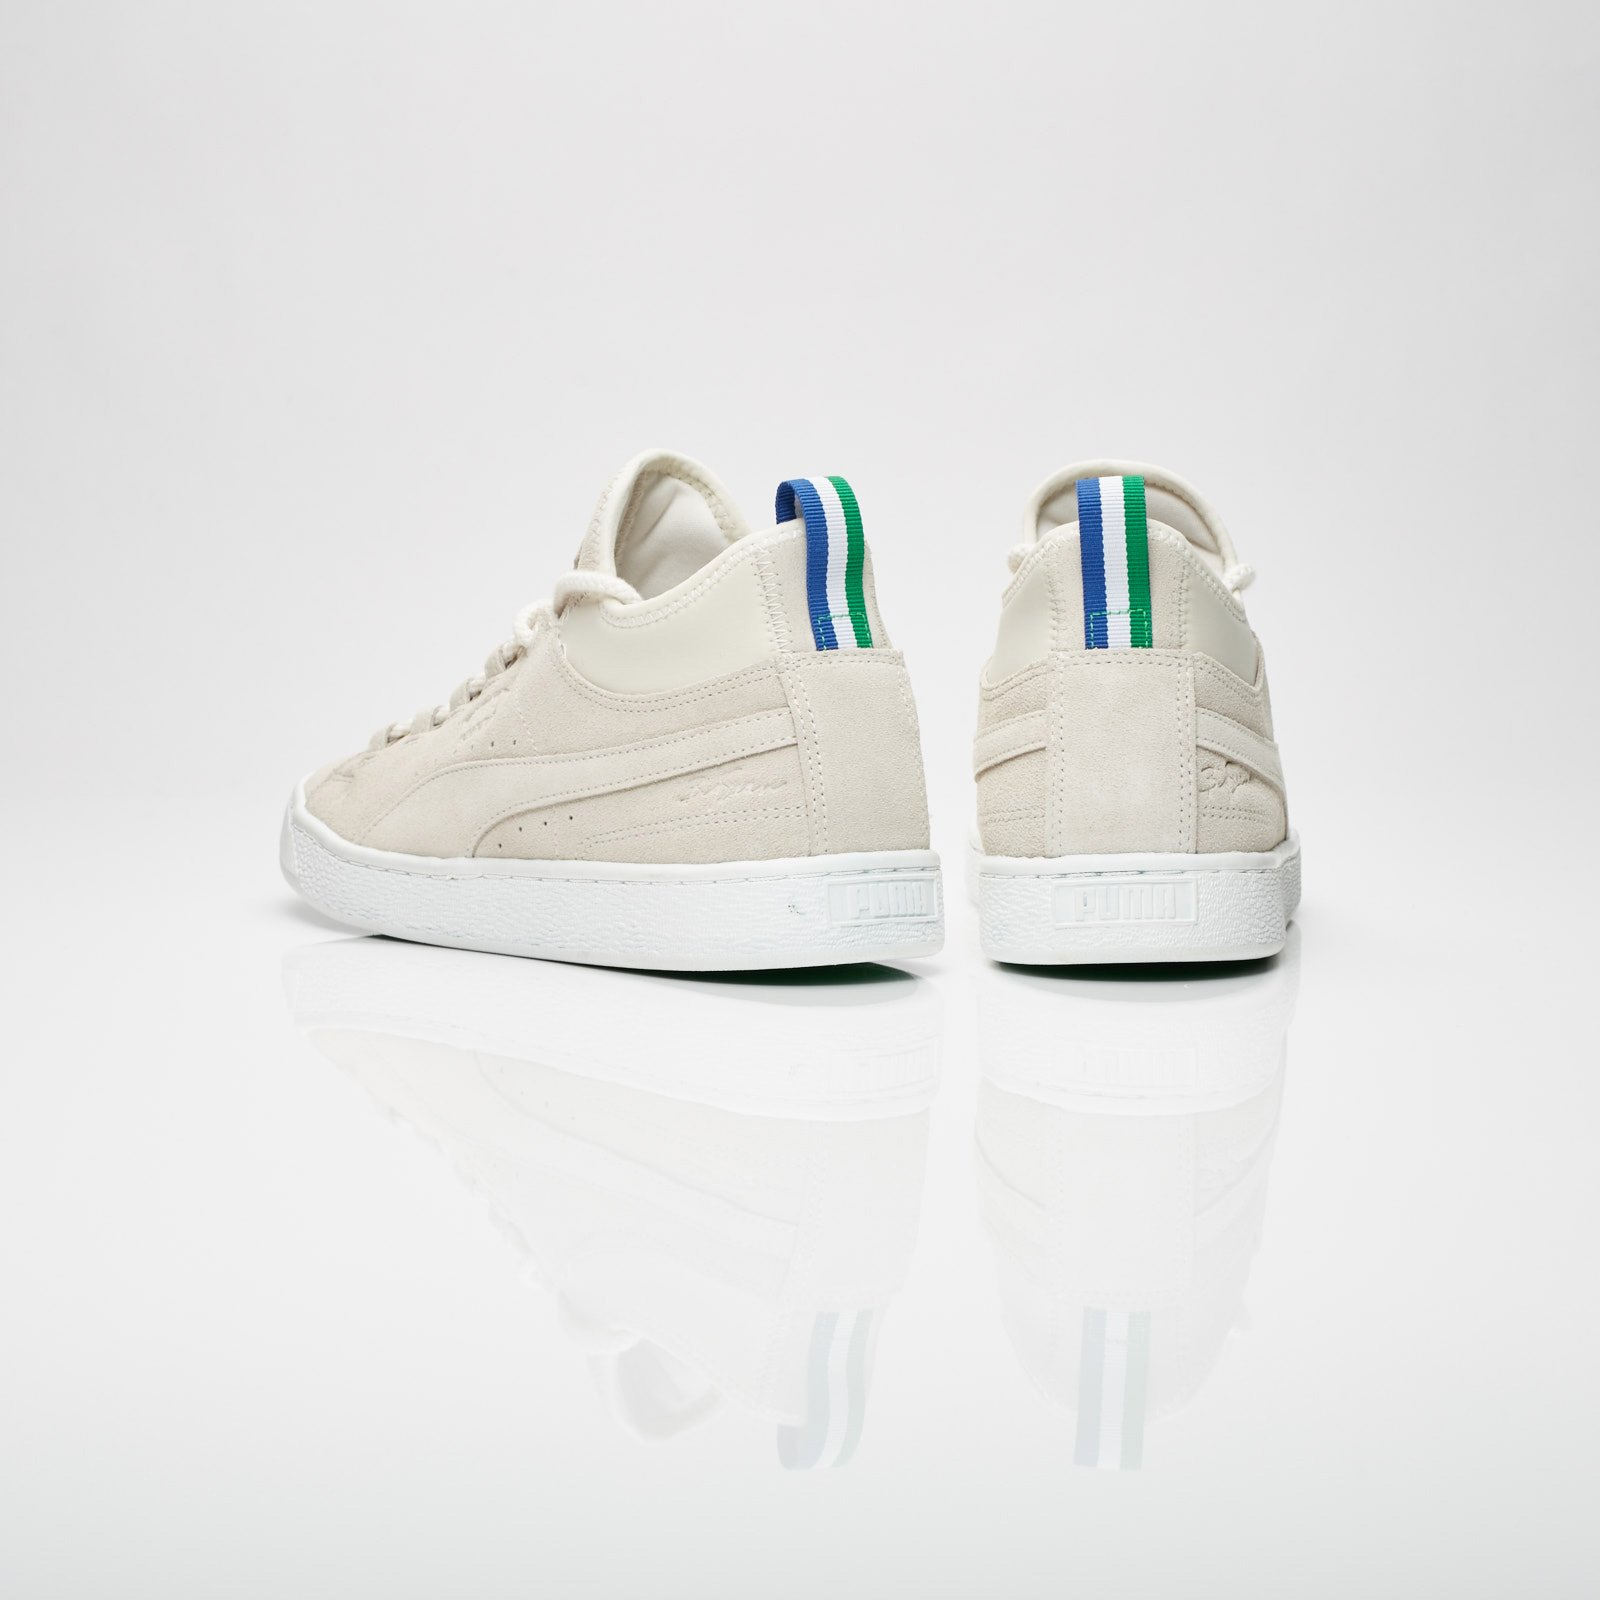 up-to-datestyling popular style store Puma Suede Classic x Big Sean - 366300-01 - Sneakersnstuff ...